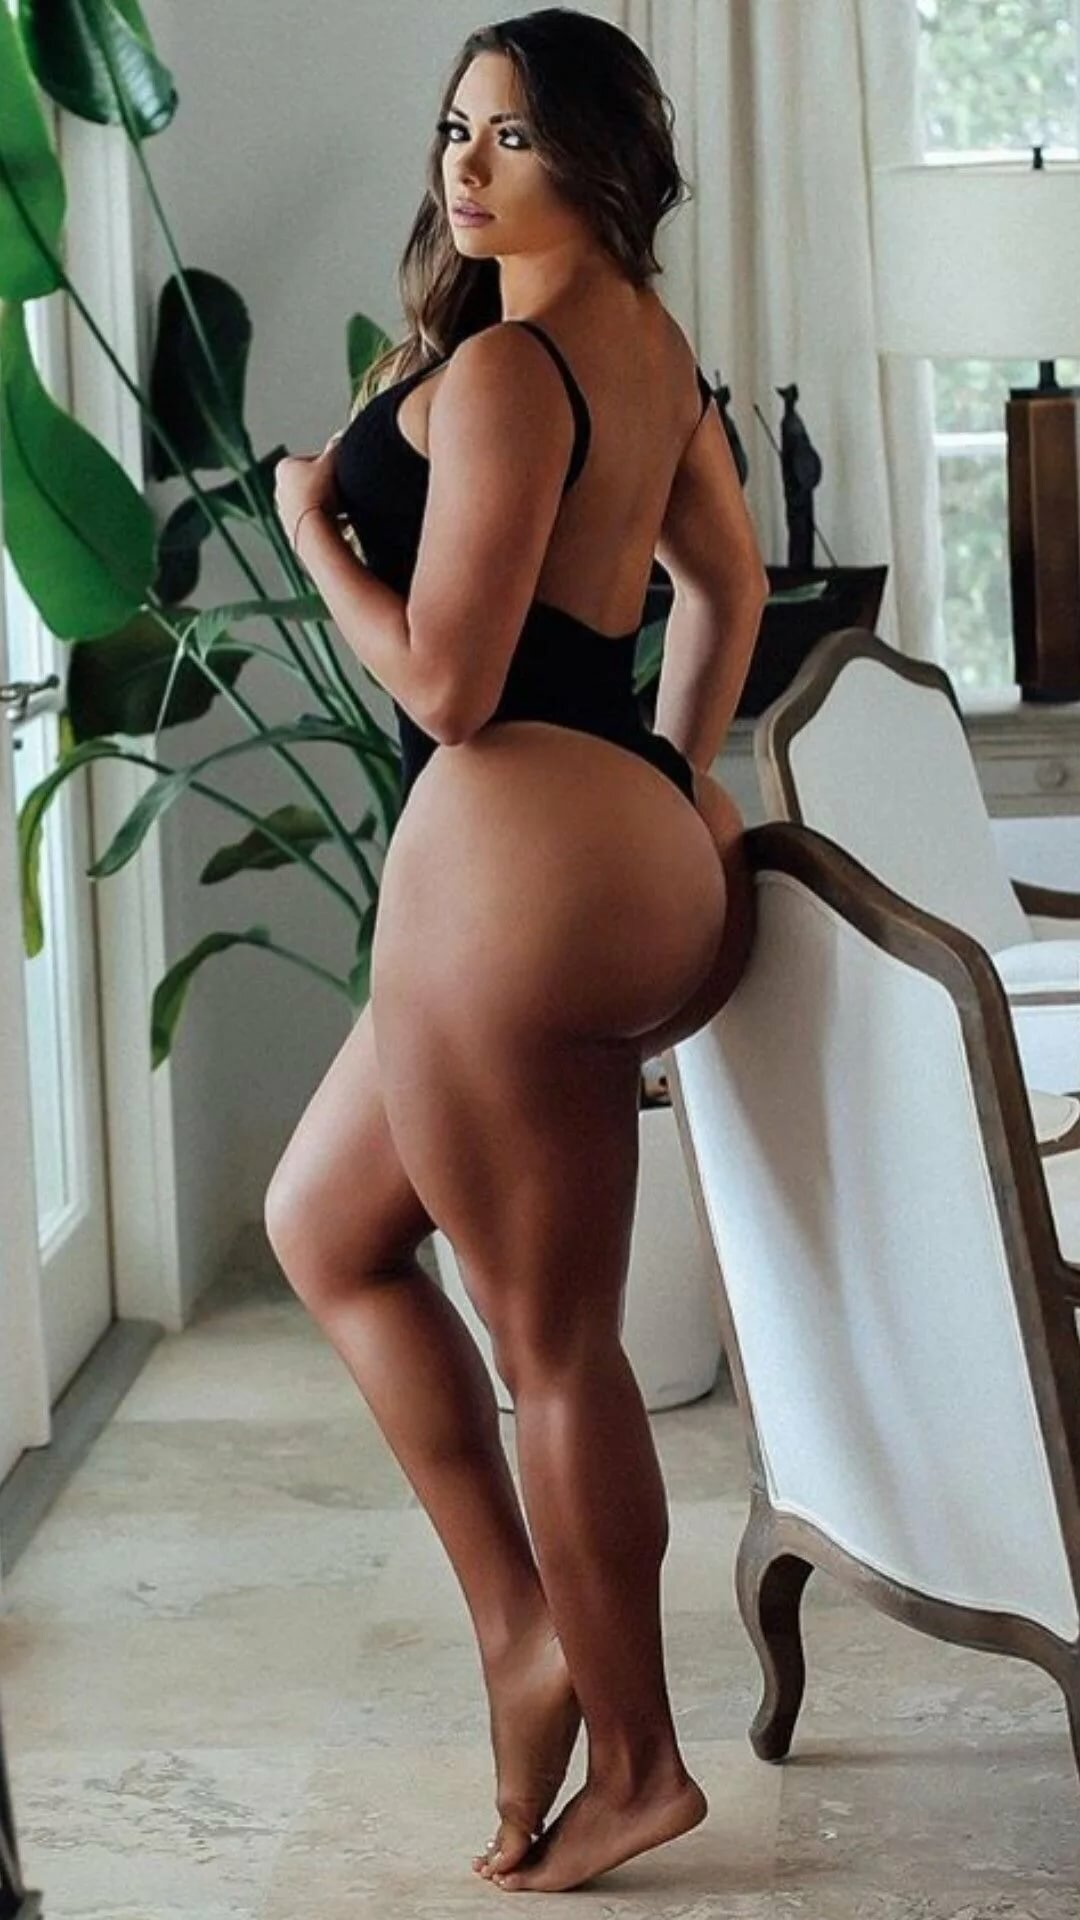 long-hair-thick-ass-the-body-nude